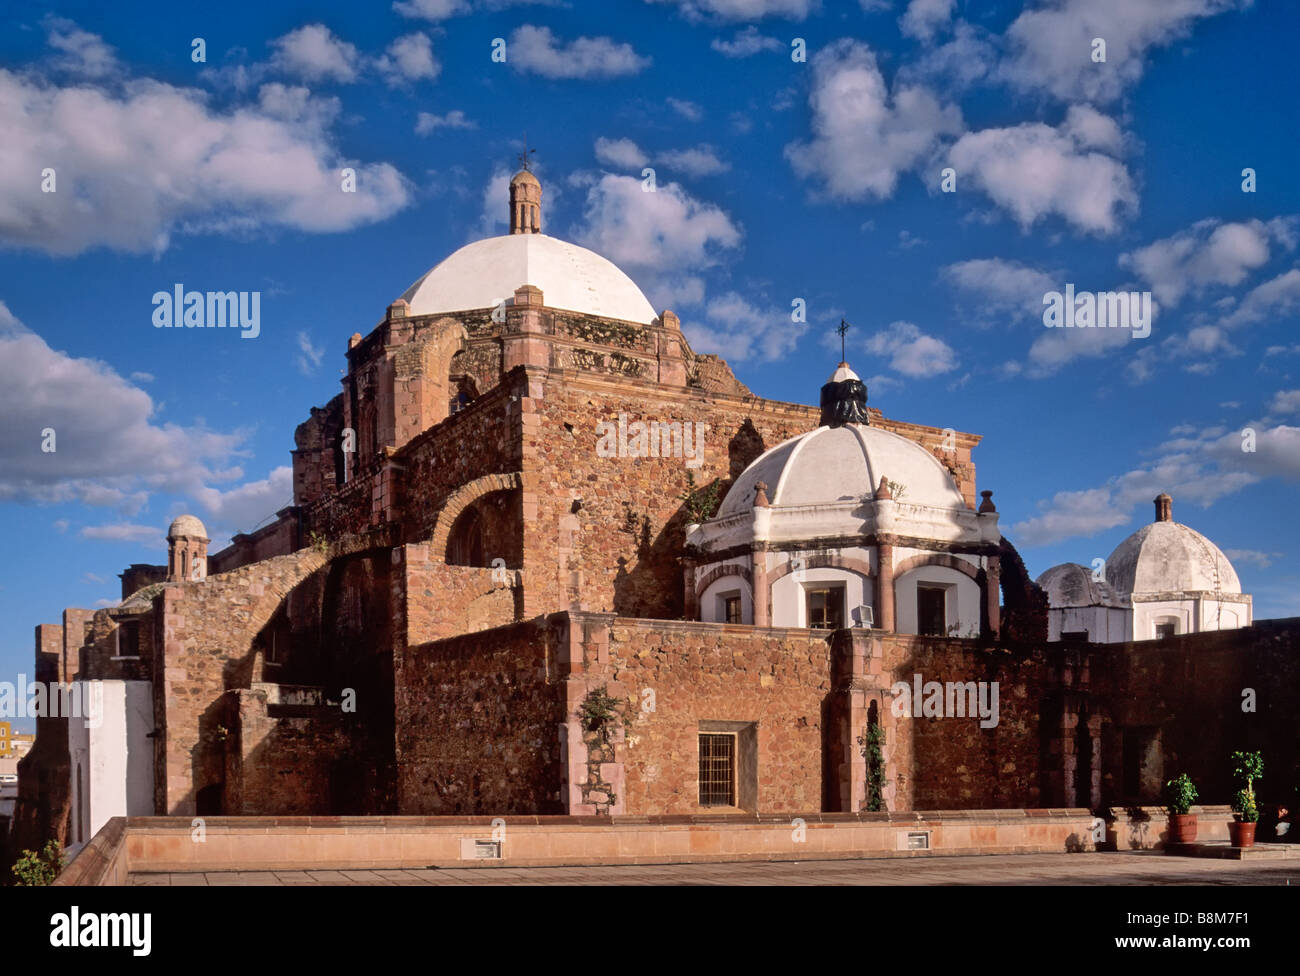 San Augustin Church in Zacatecas Mexico - Stock Image